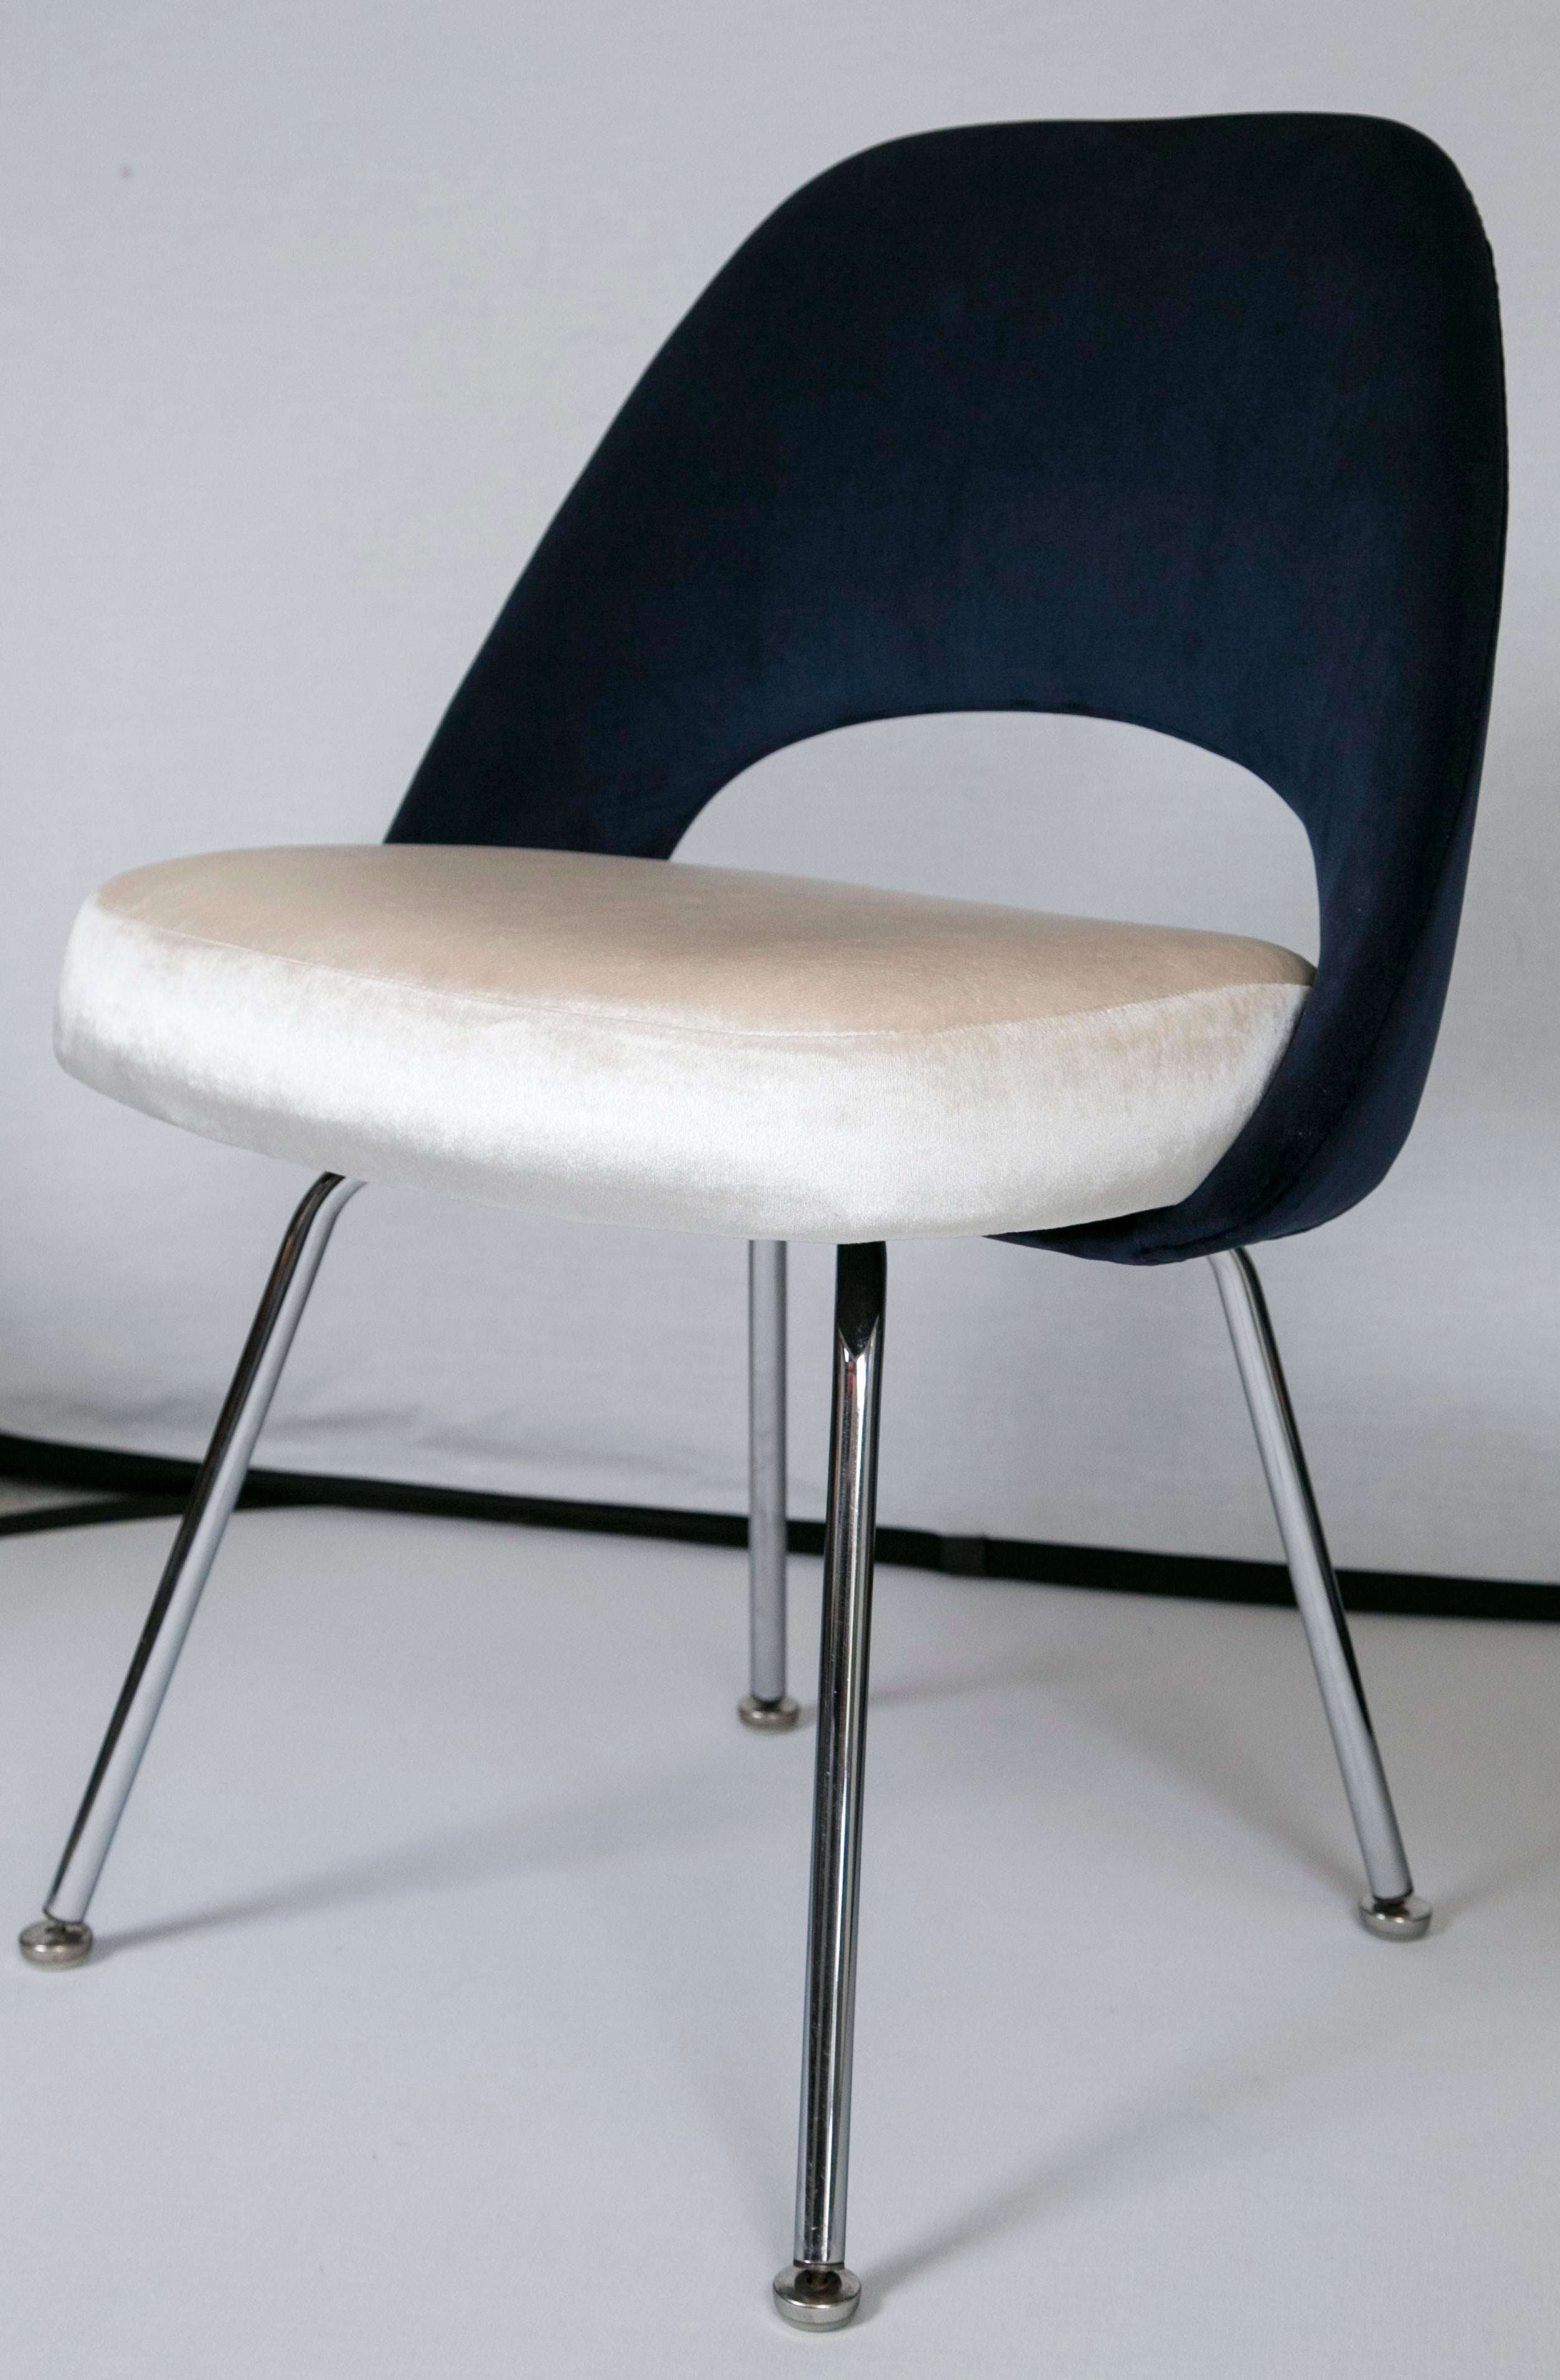 Saarinen Executive Armless Chairs Set of 6 Chairish : saarinen executive armless chairs set of 6 6222aspectfitampwidth640ampheight640 from www.chairish.com size 640 x 640 jpeg 24kB